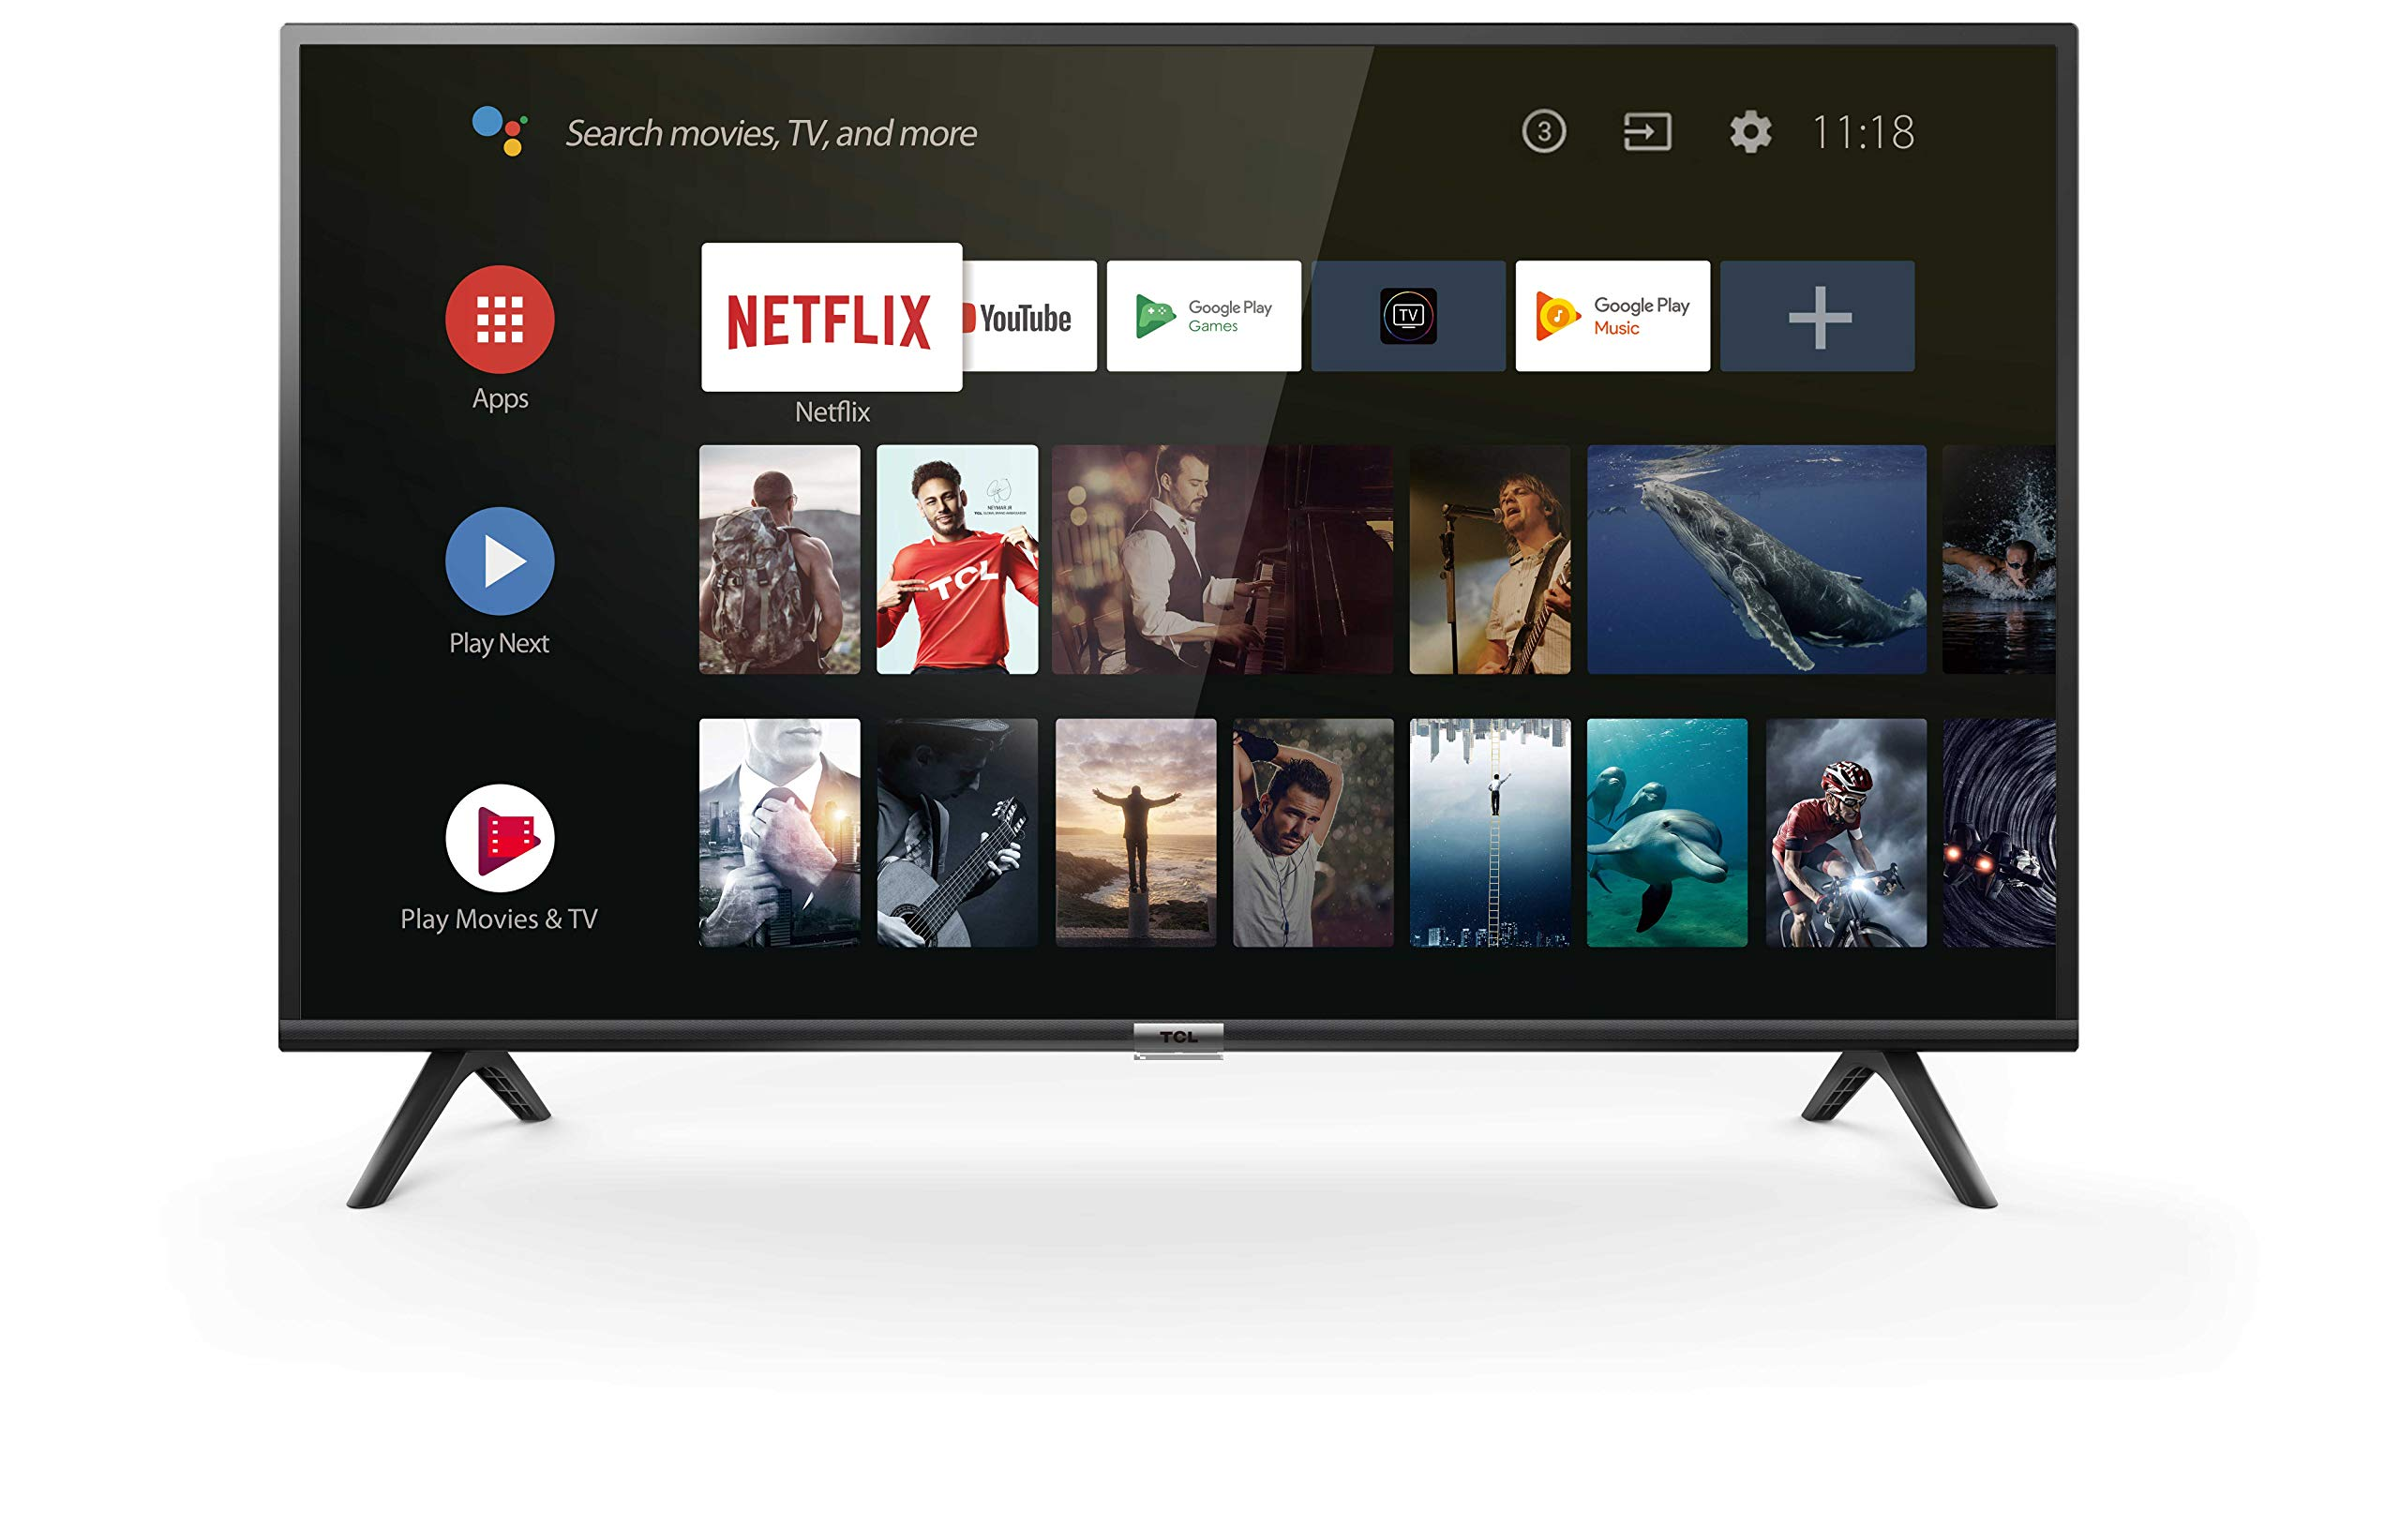 tcl 40es561 fernseher 100 cm 40 zoll smart tv full hd android tv hdr micro dimming. Black Bedroom Furniture Sets. Home Design Ideas